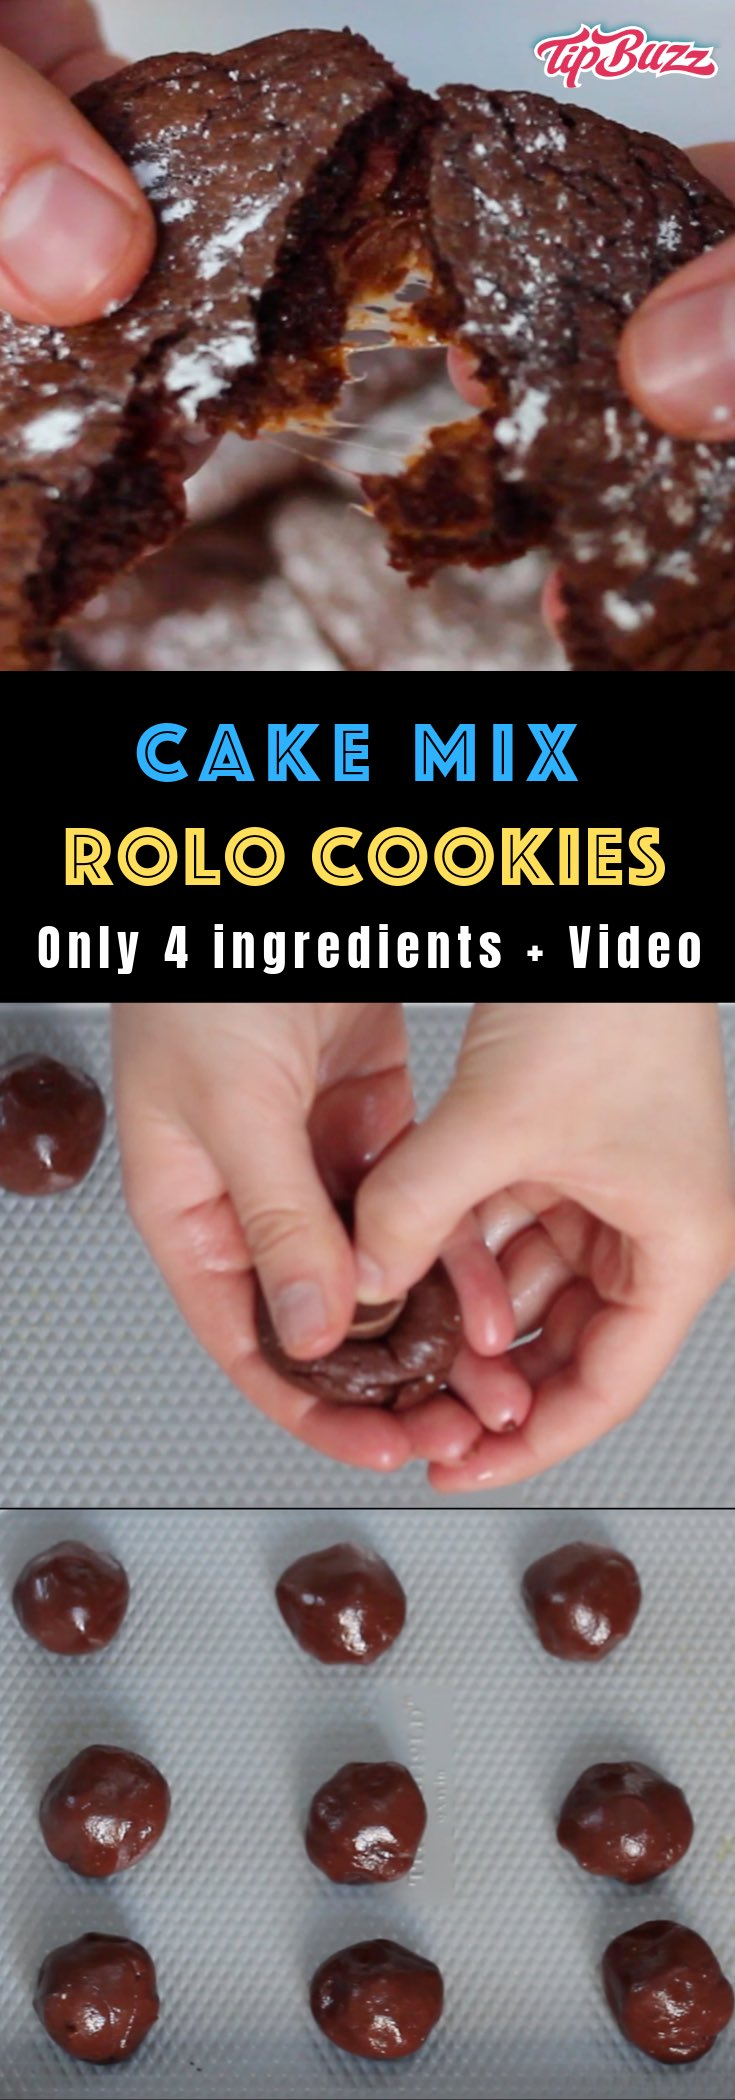 These Rolo Cookies are soft and chewy treats filled with a Rolo chocolate caramel in the middle. It will take your cookie game to the next level! This 4-ingredient Rolo stuffed cake mix cookies recipe is so easy to make and perfect for holidays.